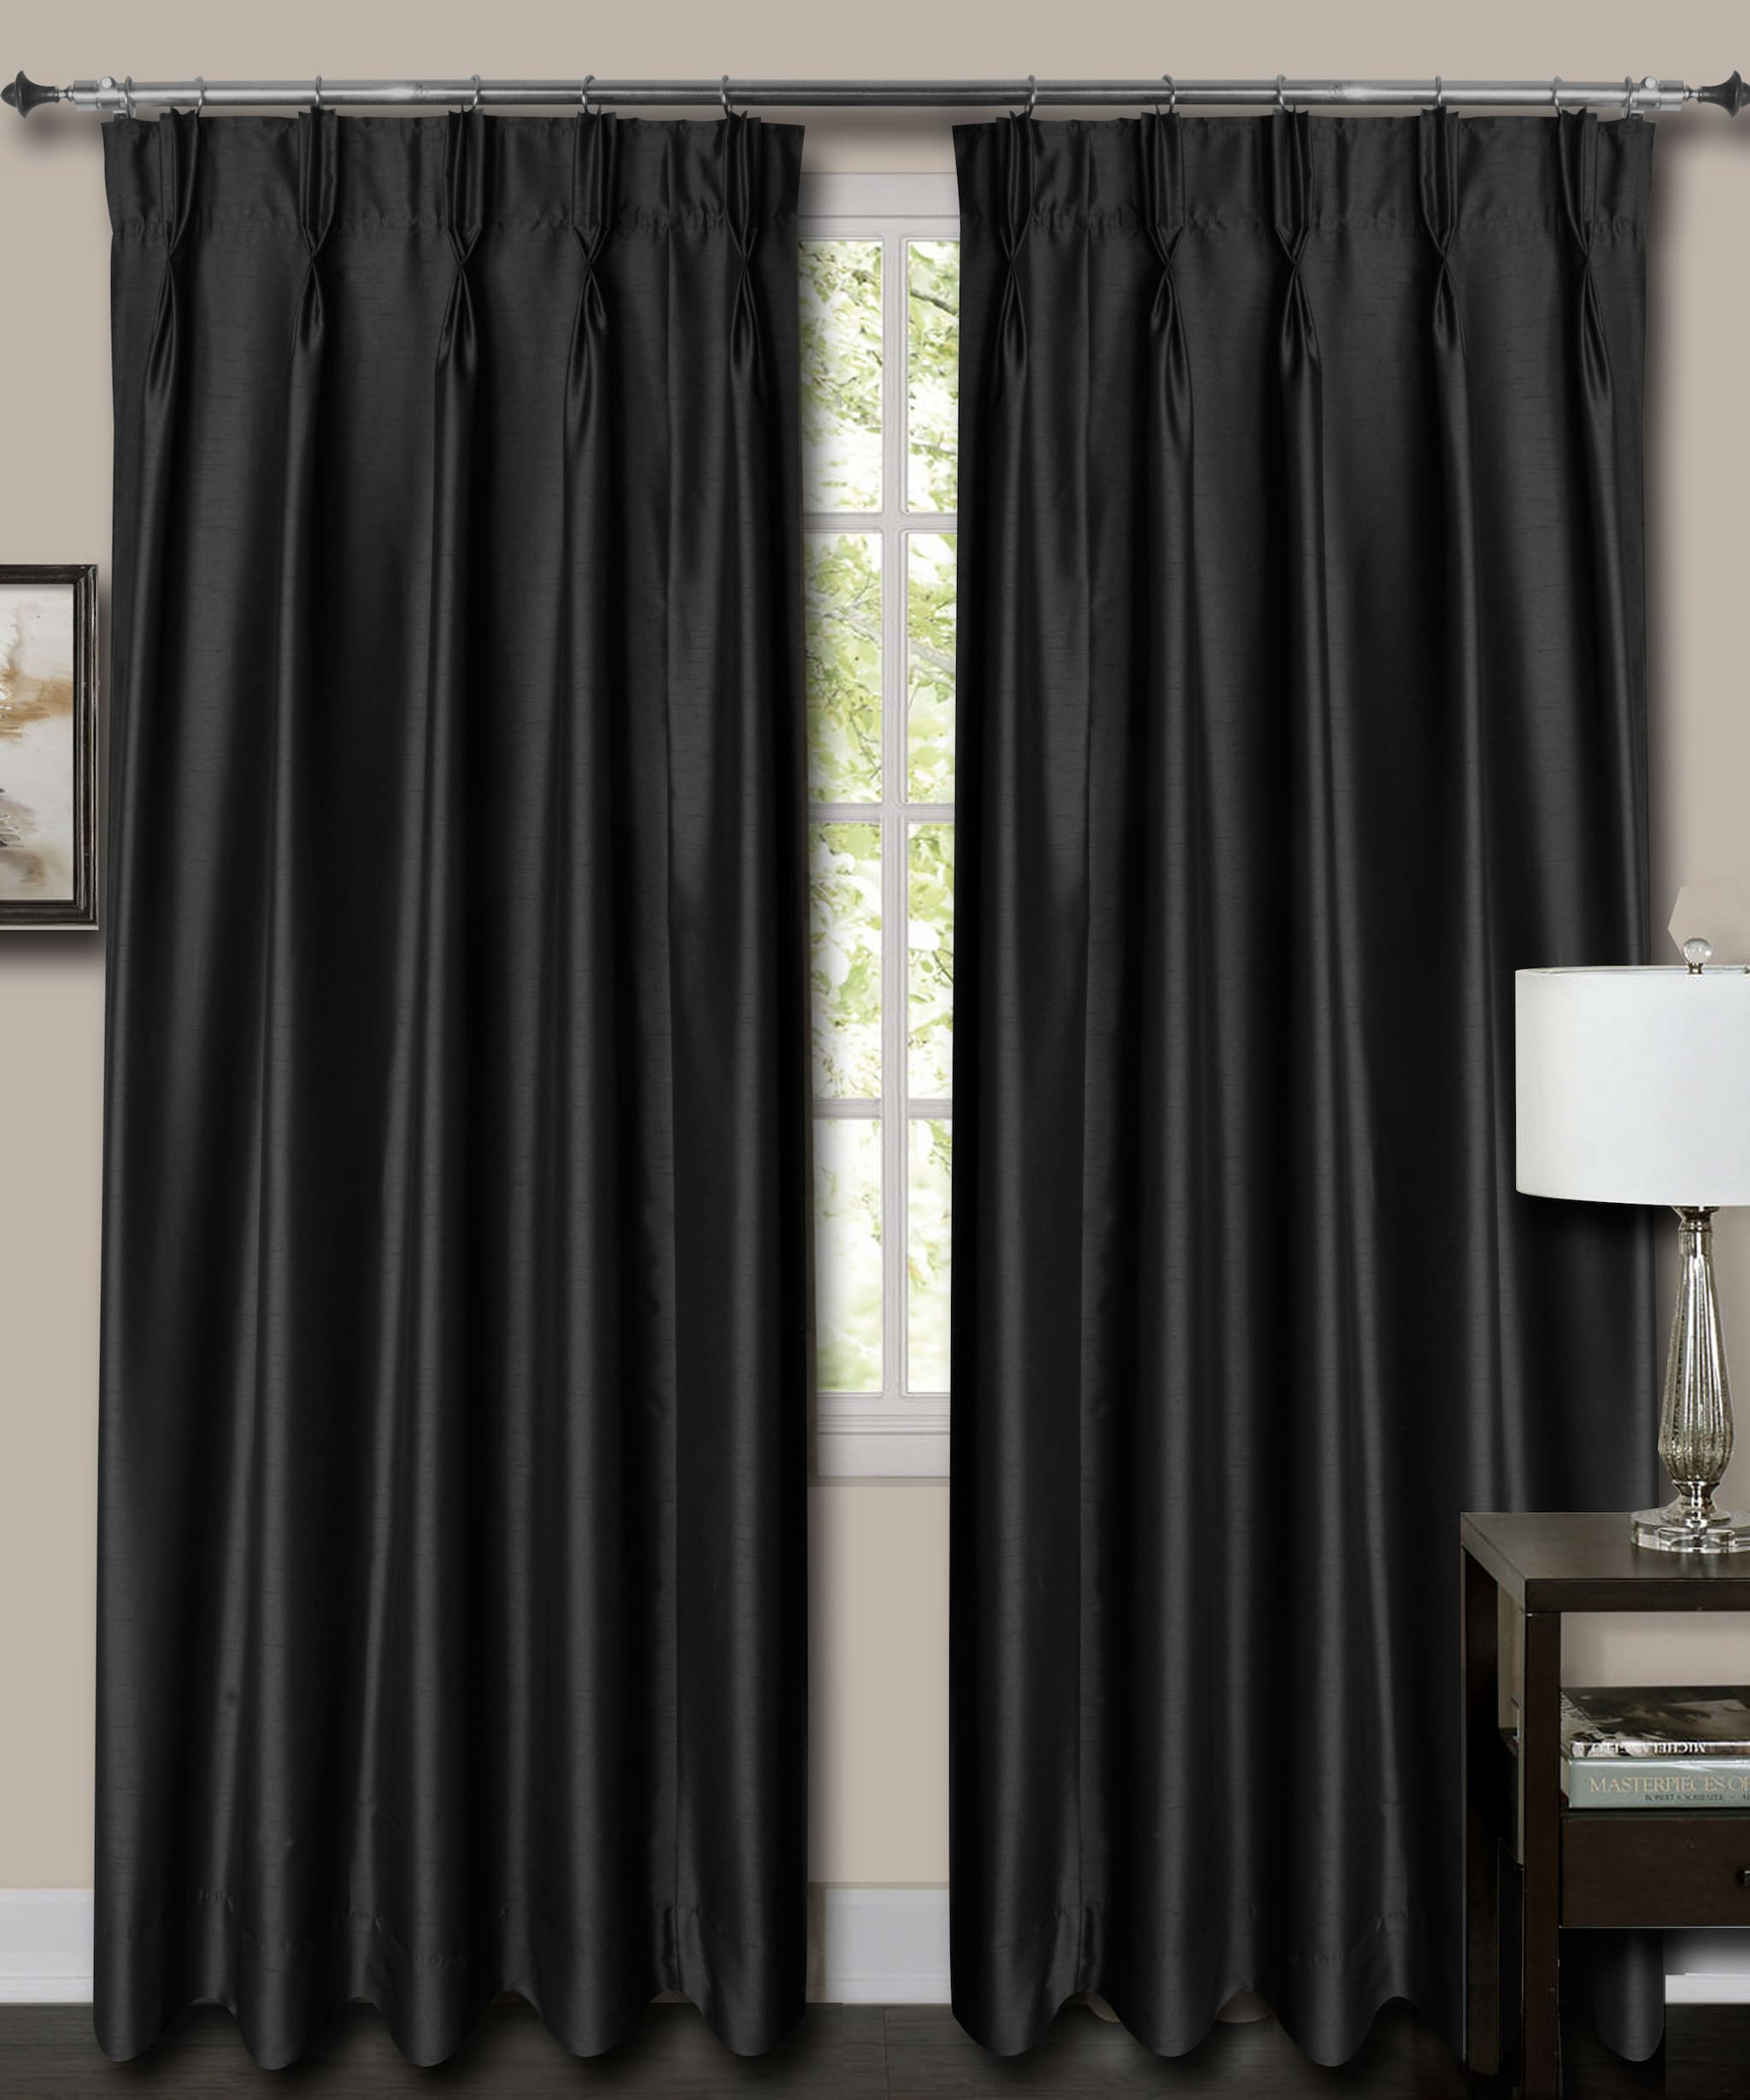 "French Pleat Top Black Faux Silk Dupioni Curtains. (24"" Wide,11 Feet Long,Thick Lining)"